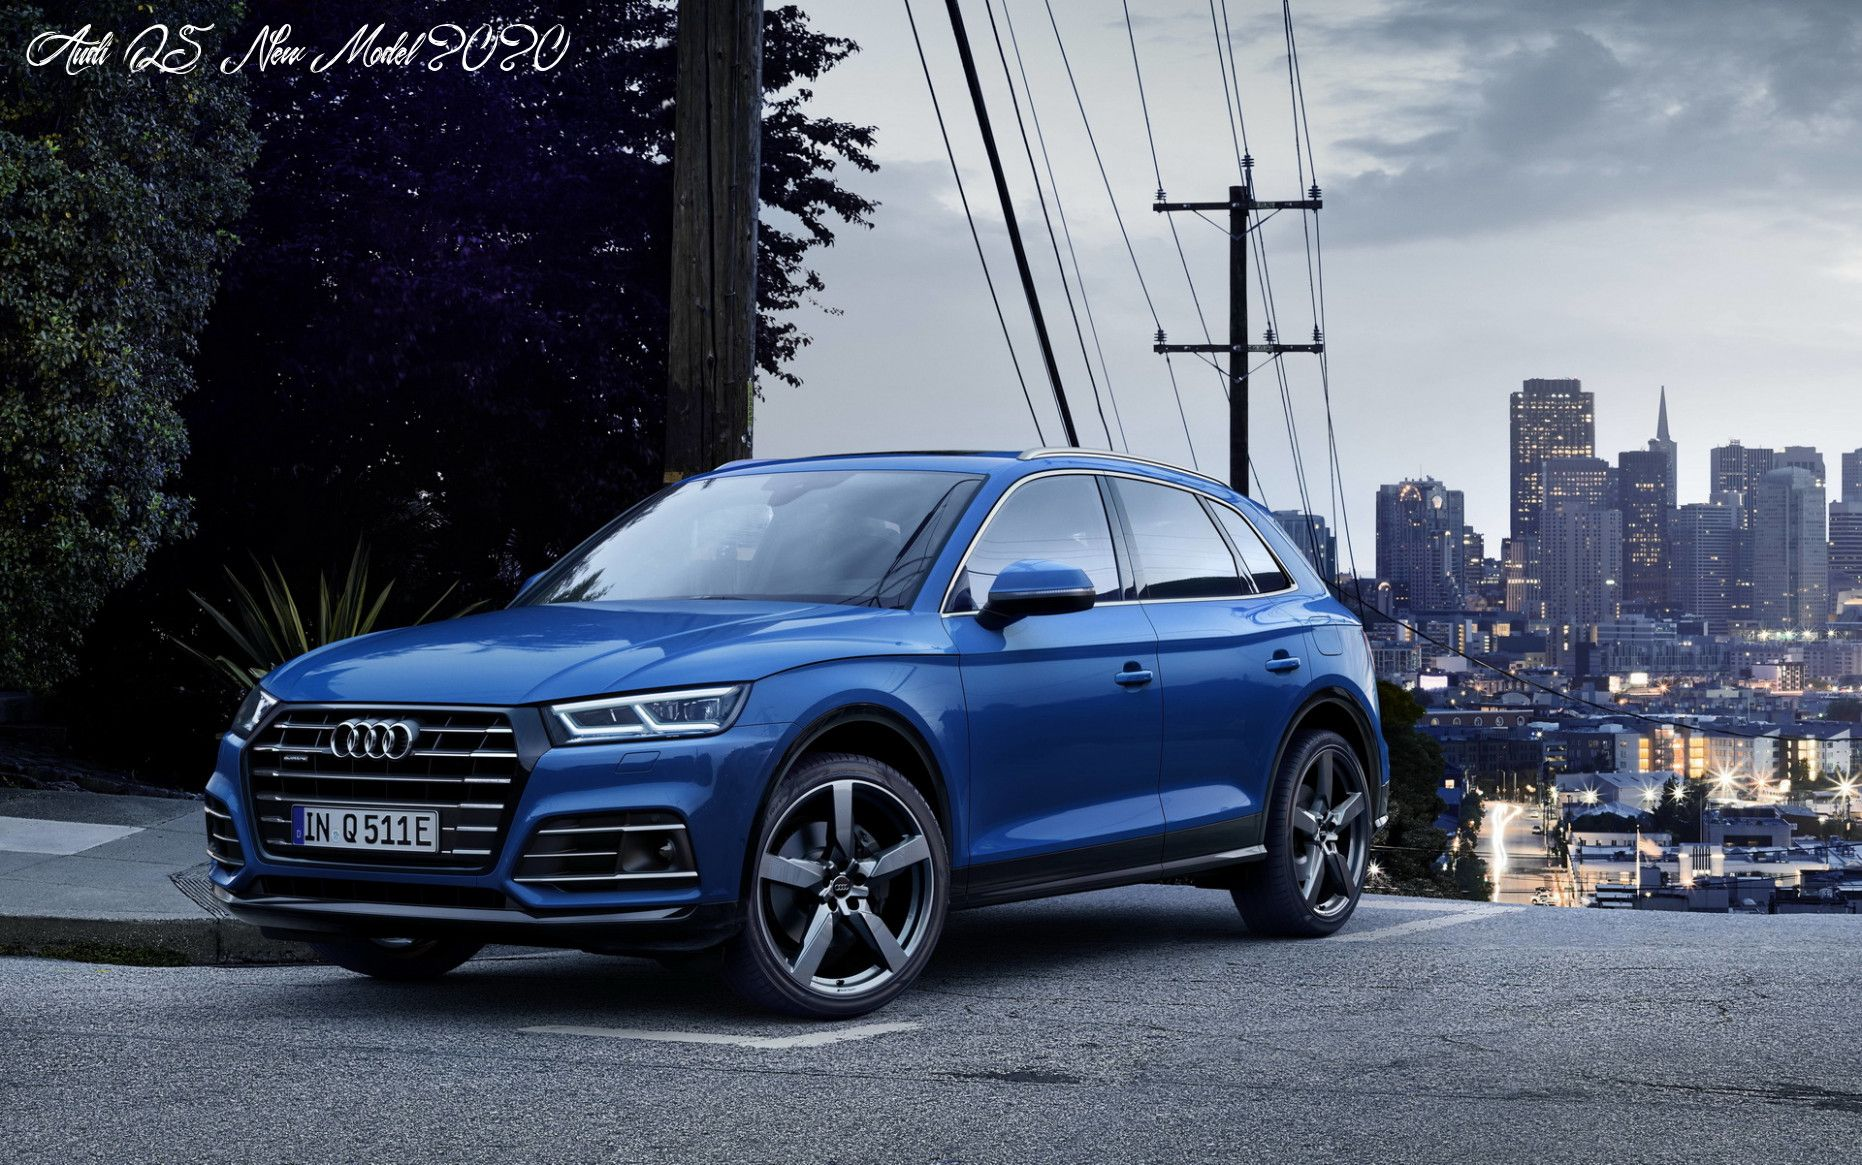 Audi Q5 New Model 2020 Price And Release Date In 2020 Audi Q5 Audi Hybrid Car